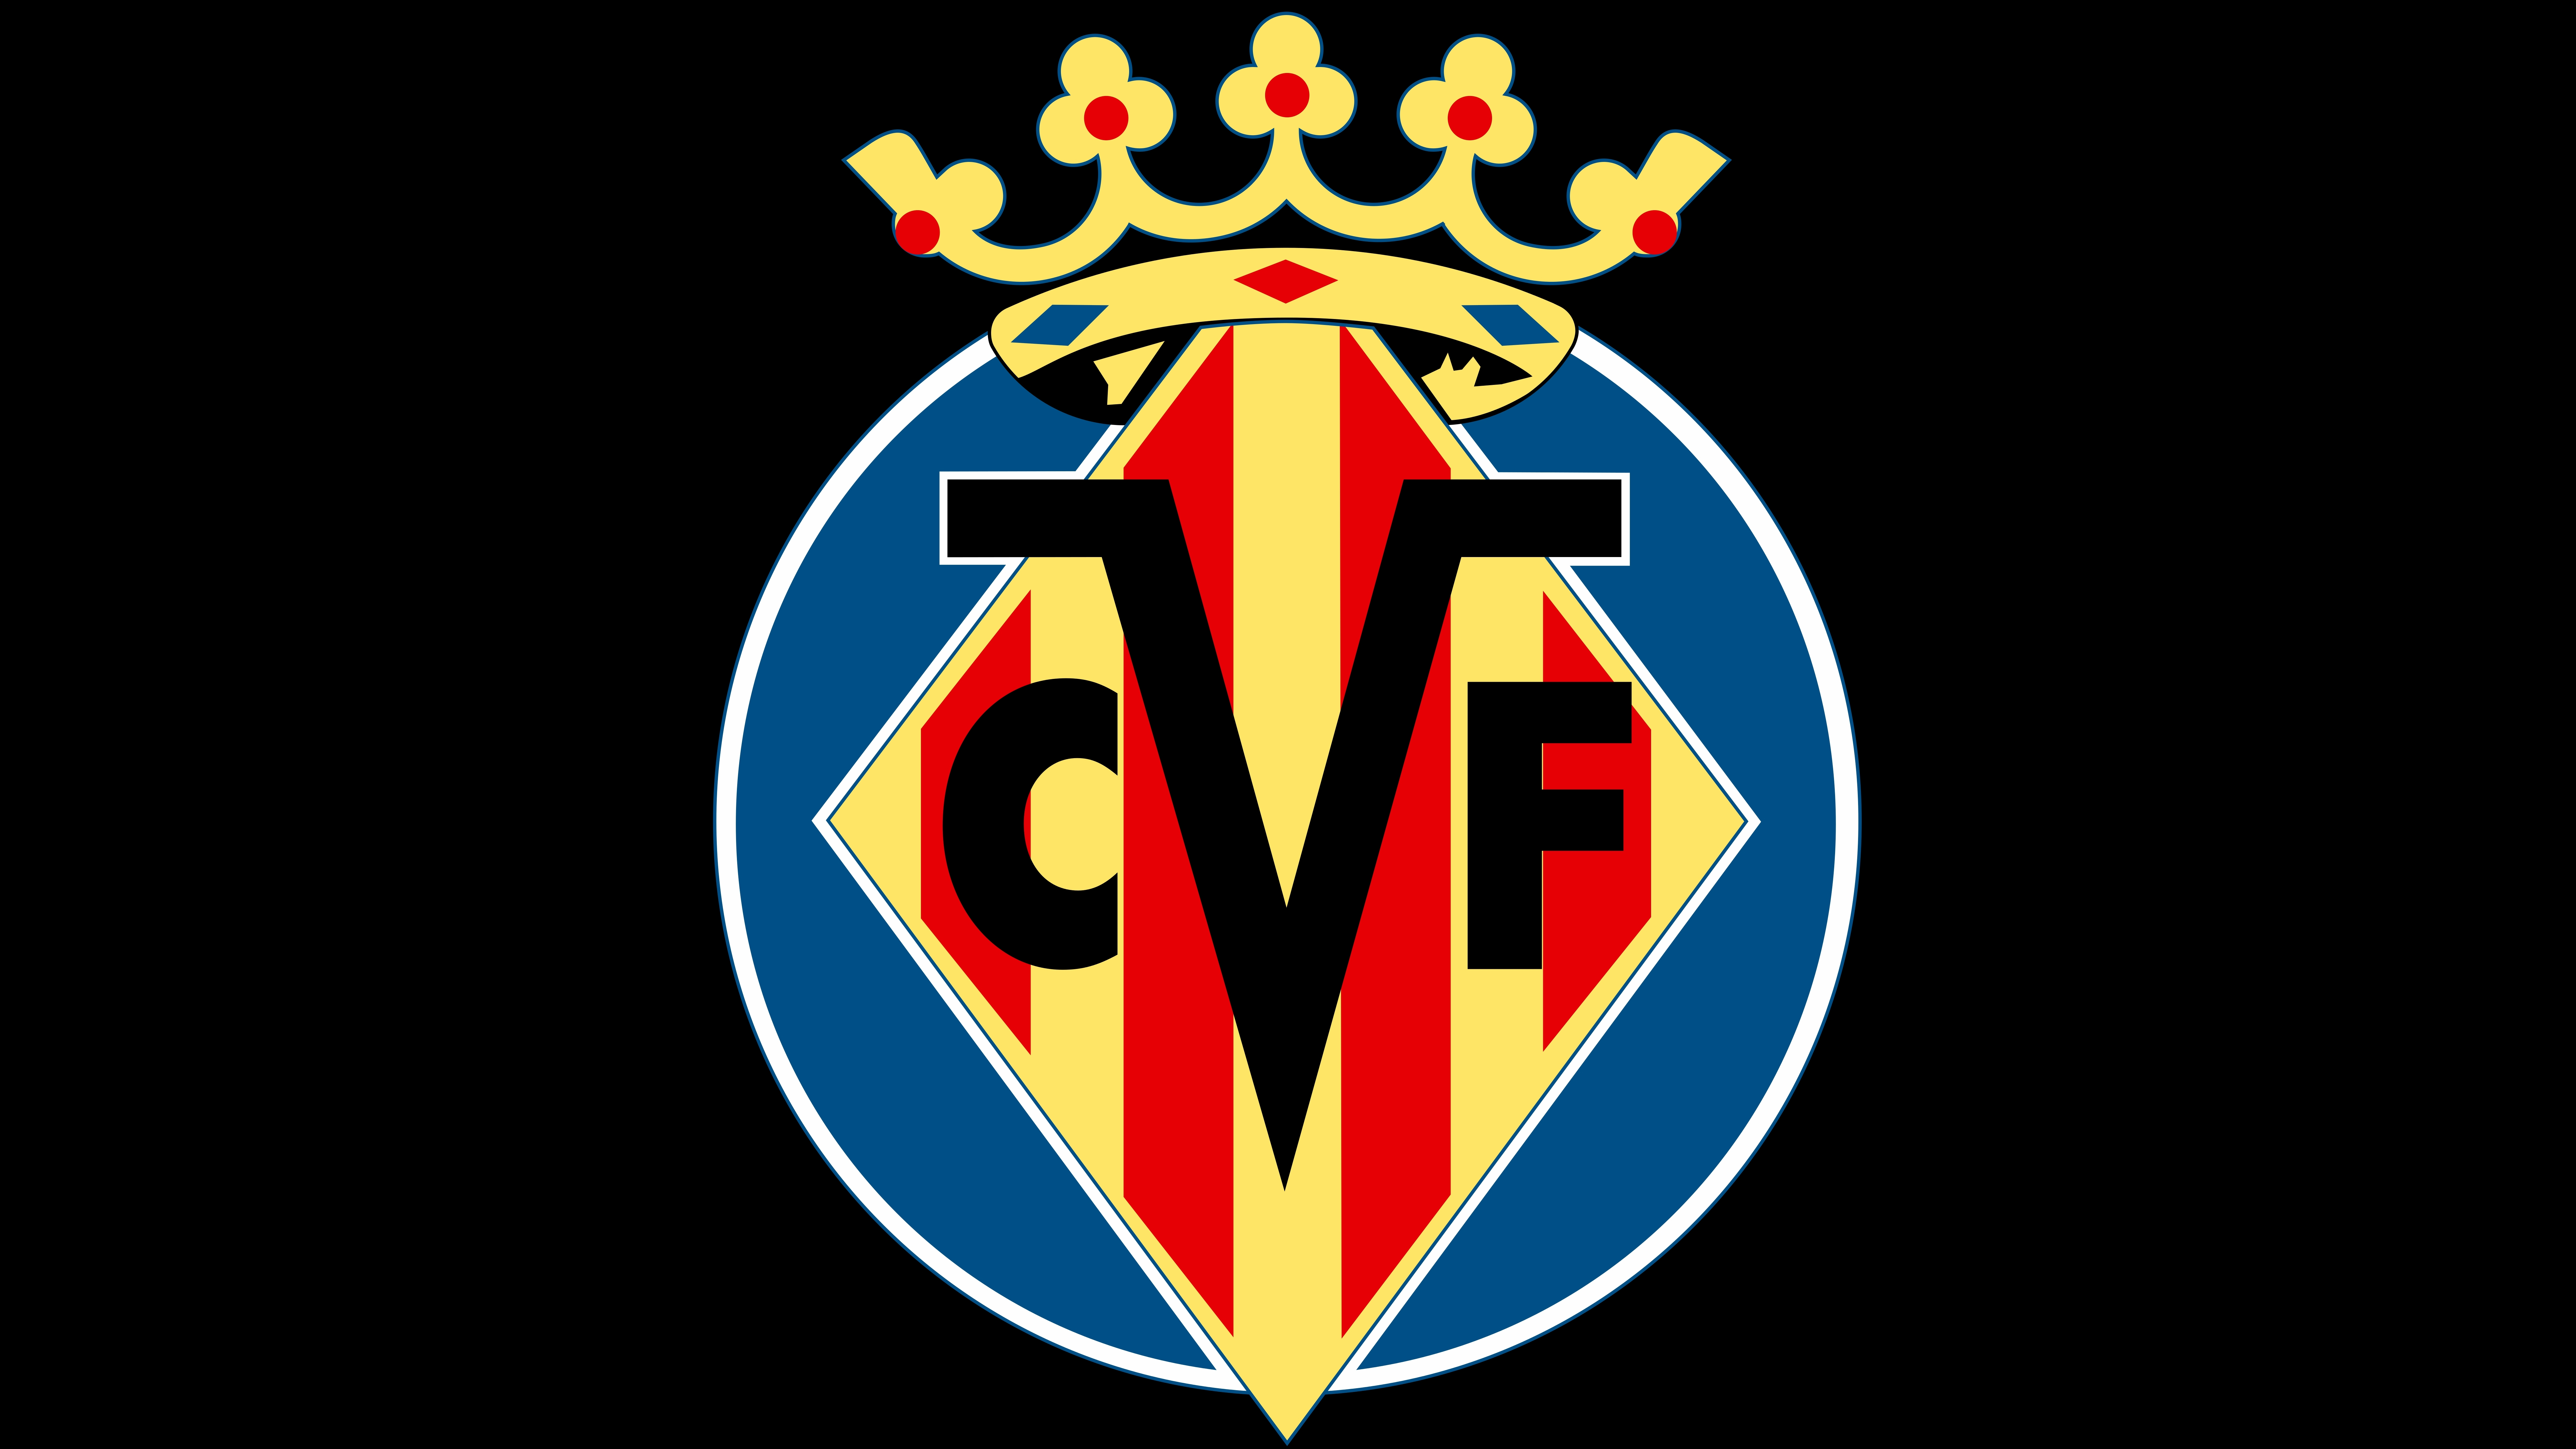 1 Villarreal Cf Hd Wallpapers Background Images Wallpaper Abyss